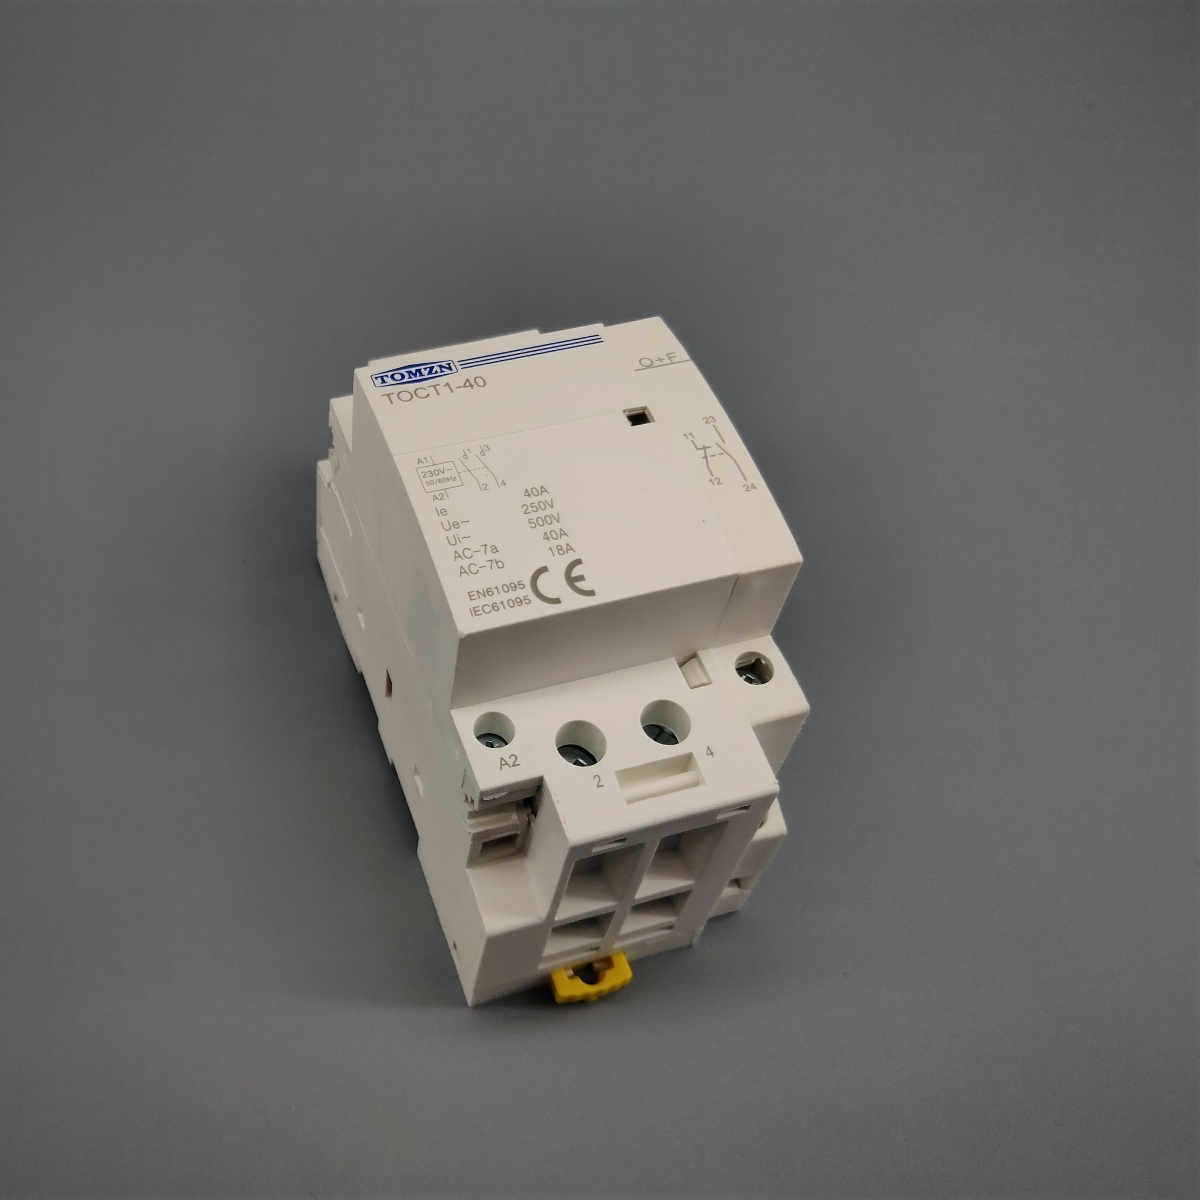 H818e0efad6ef40d09e7f5c78c842df803 - O+F Auxiliary Contactor for TOCT1 househould AC contactor 2NO or 1NO 1NC